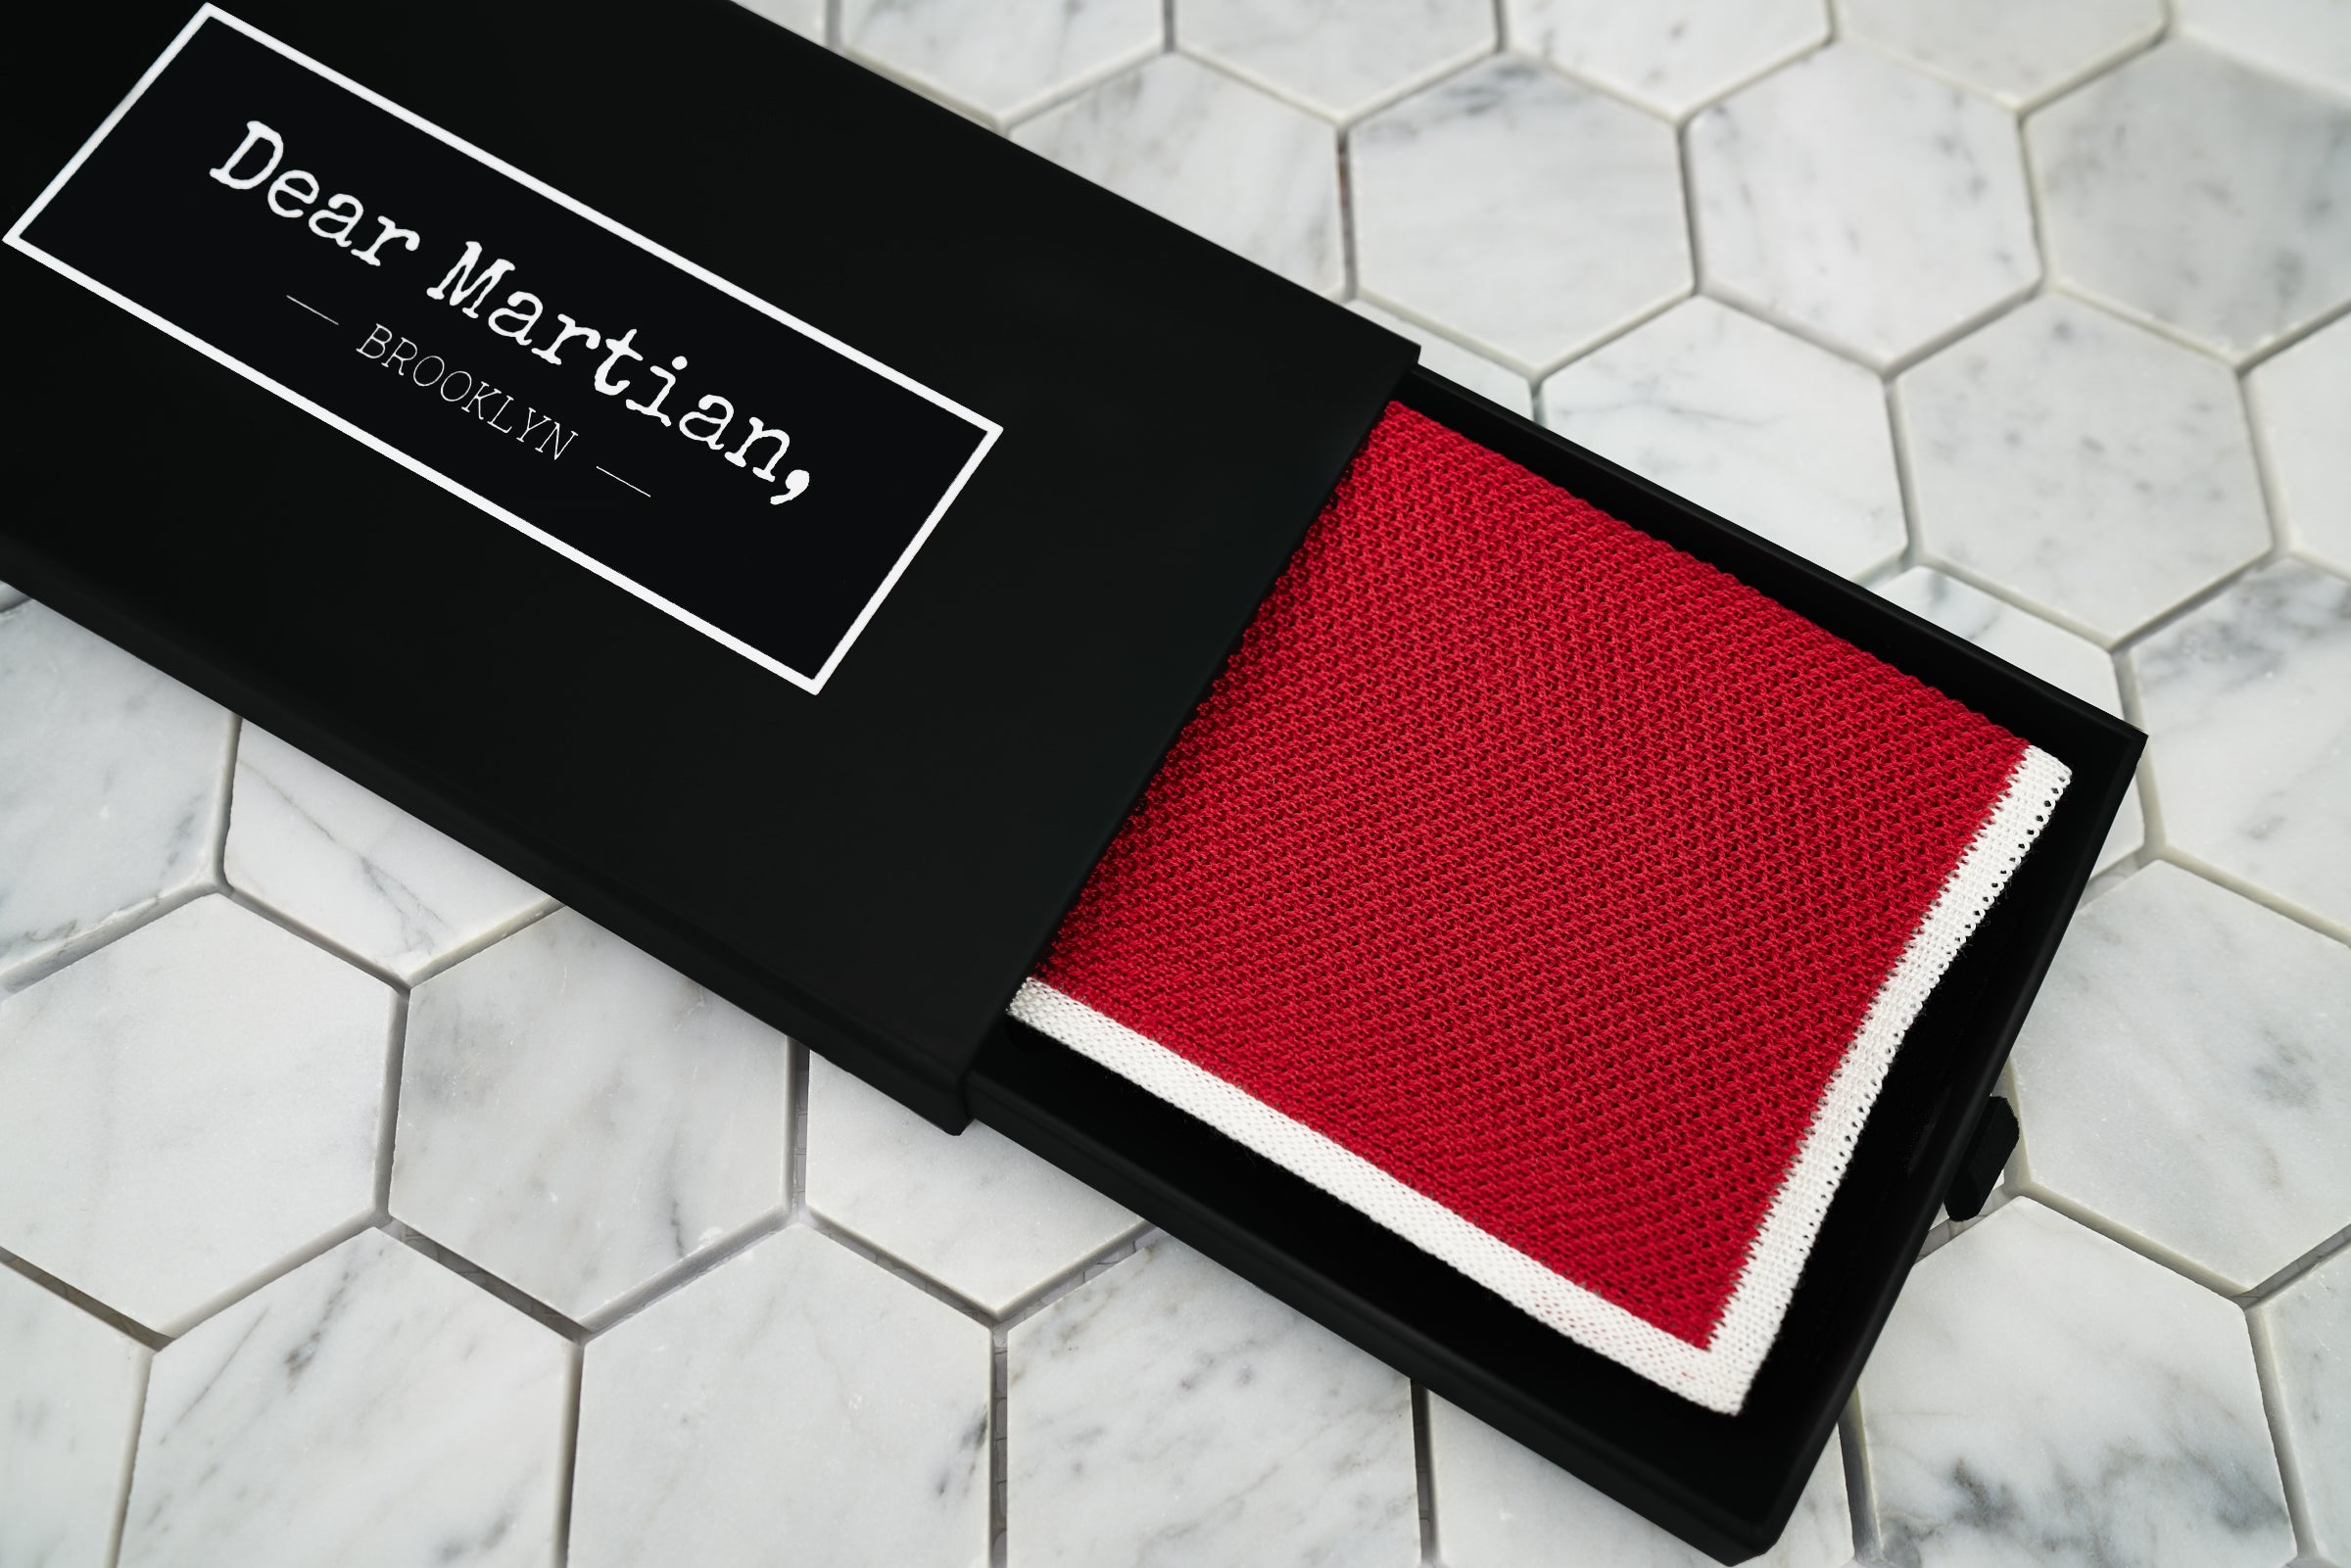 An image of the knitted red handkerchief inside the Dear Martian, Brooklyn black pull out style box.